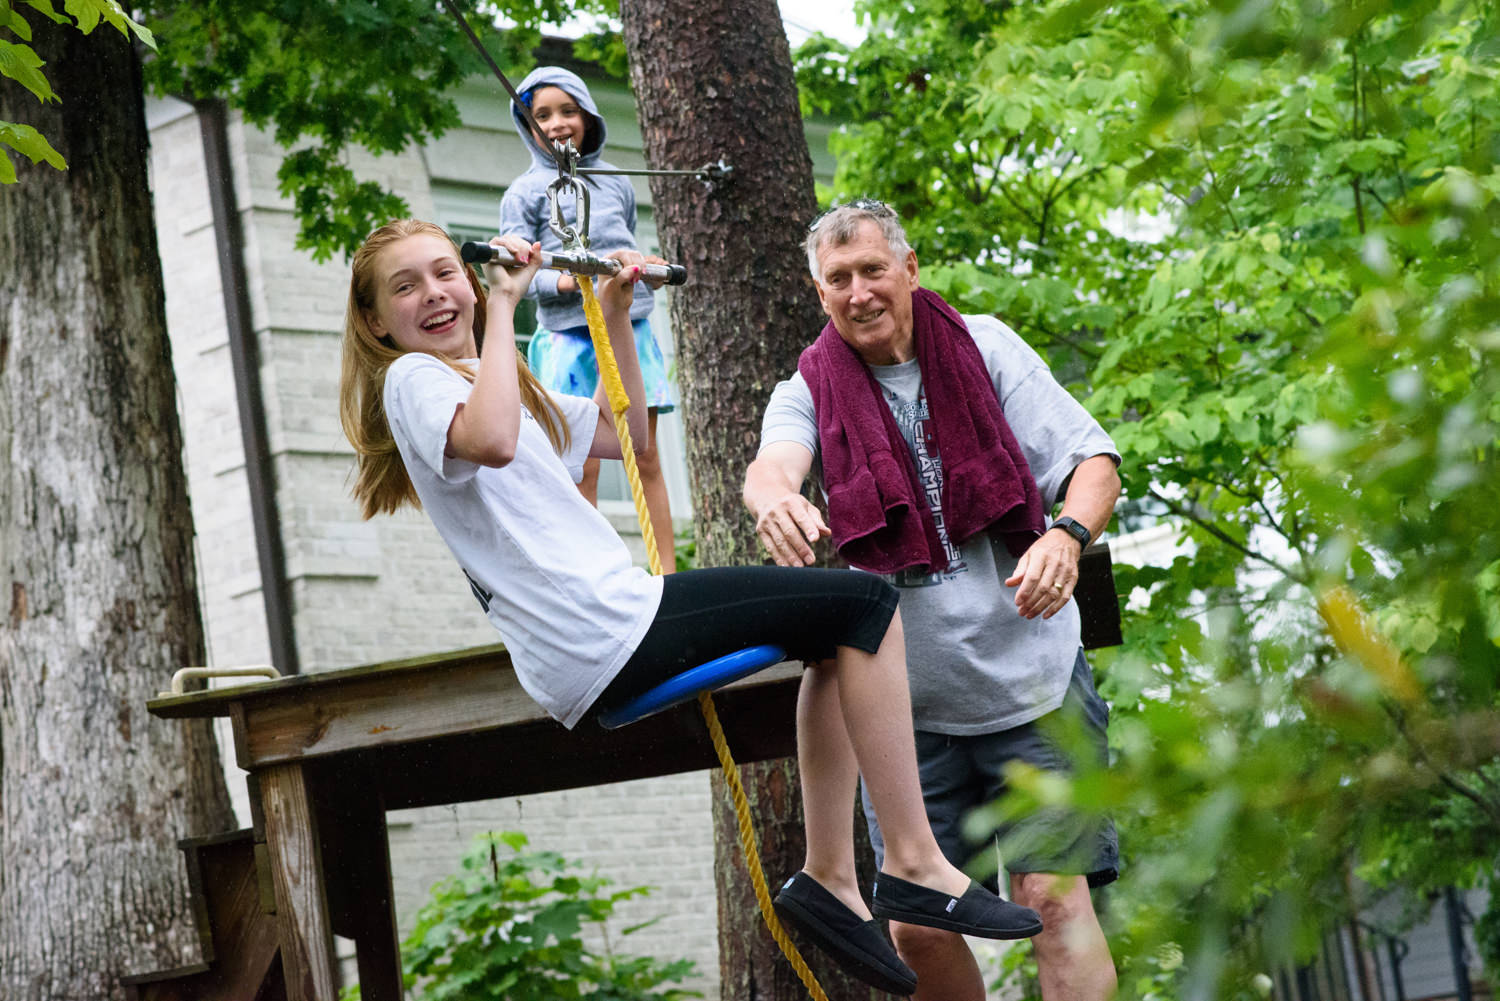 grandfather pushes his granddaughter on a zip line